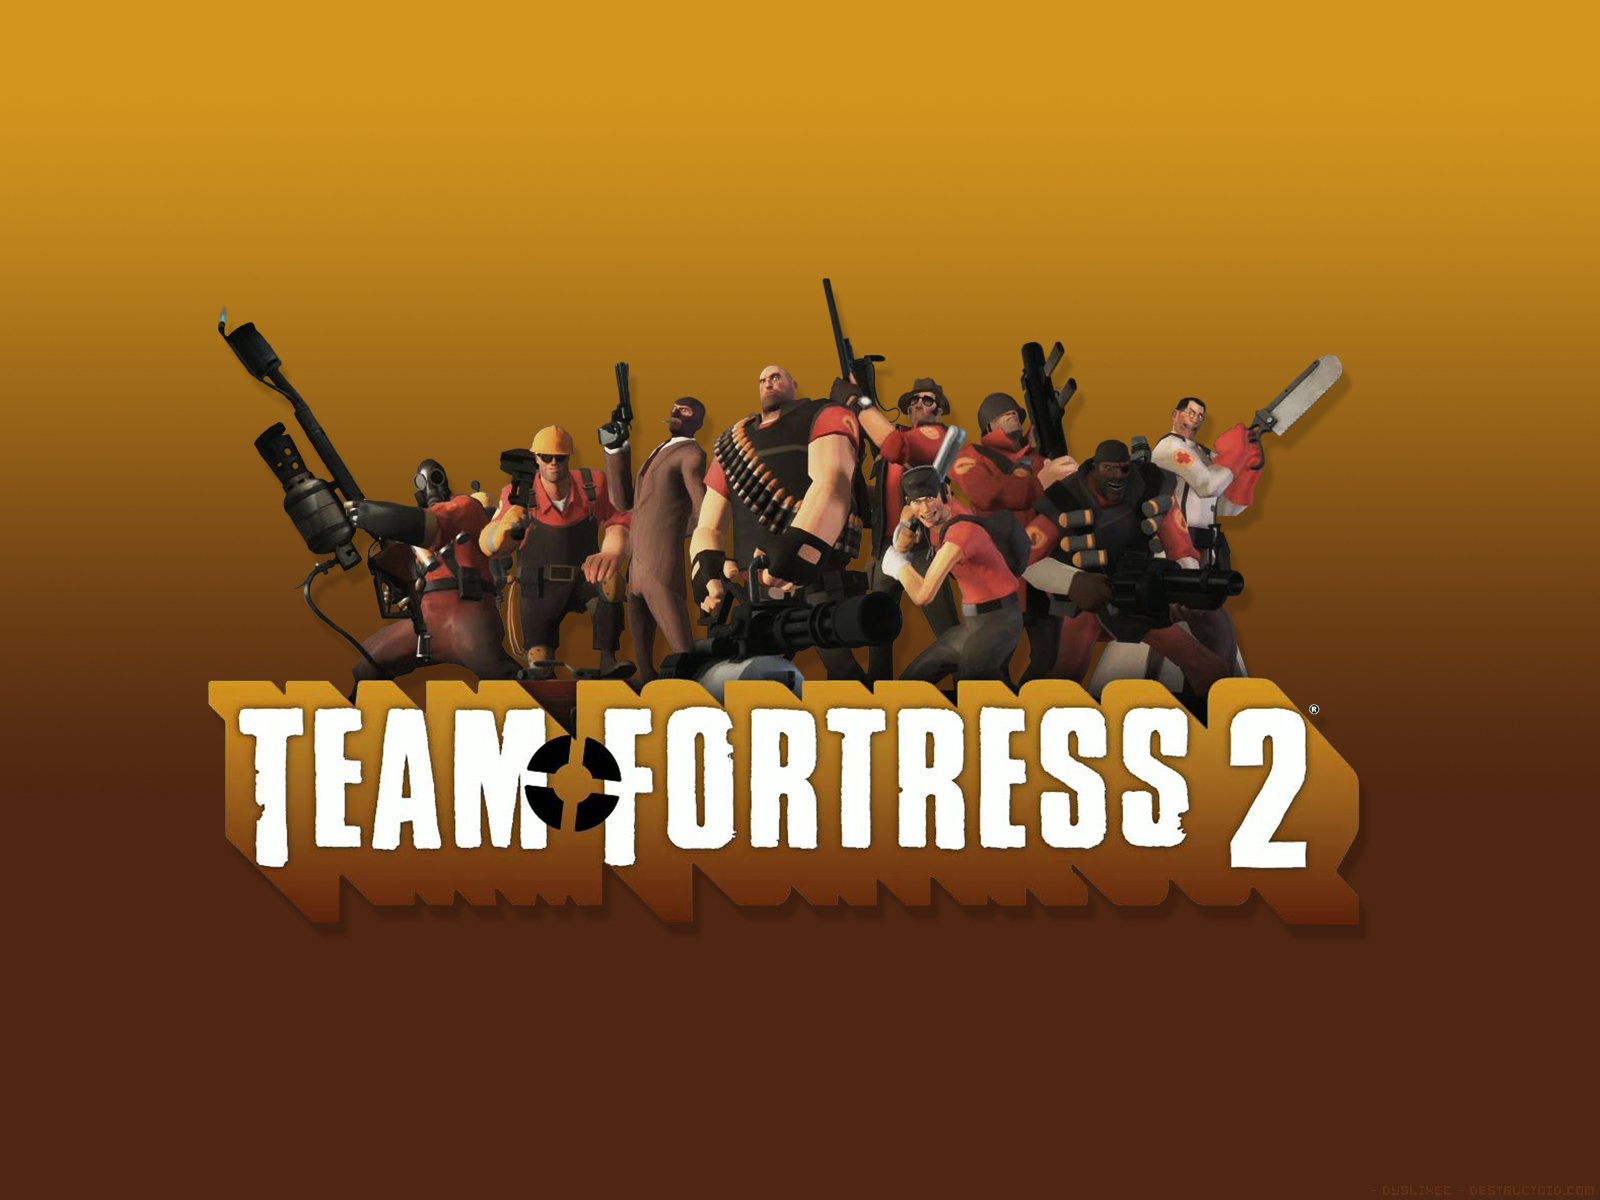 Team fortress 2 all characters hd wallpaper wallpapers - Tf2 logo wallpaper ...